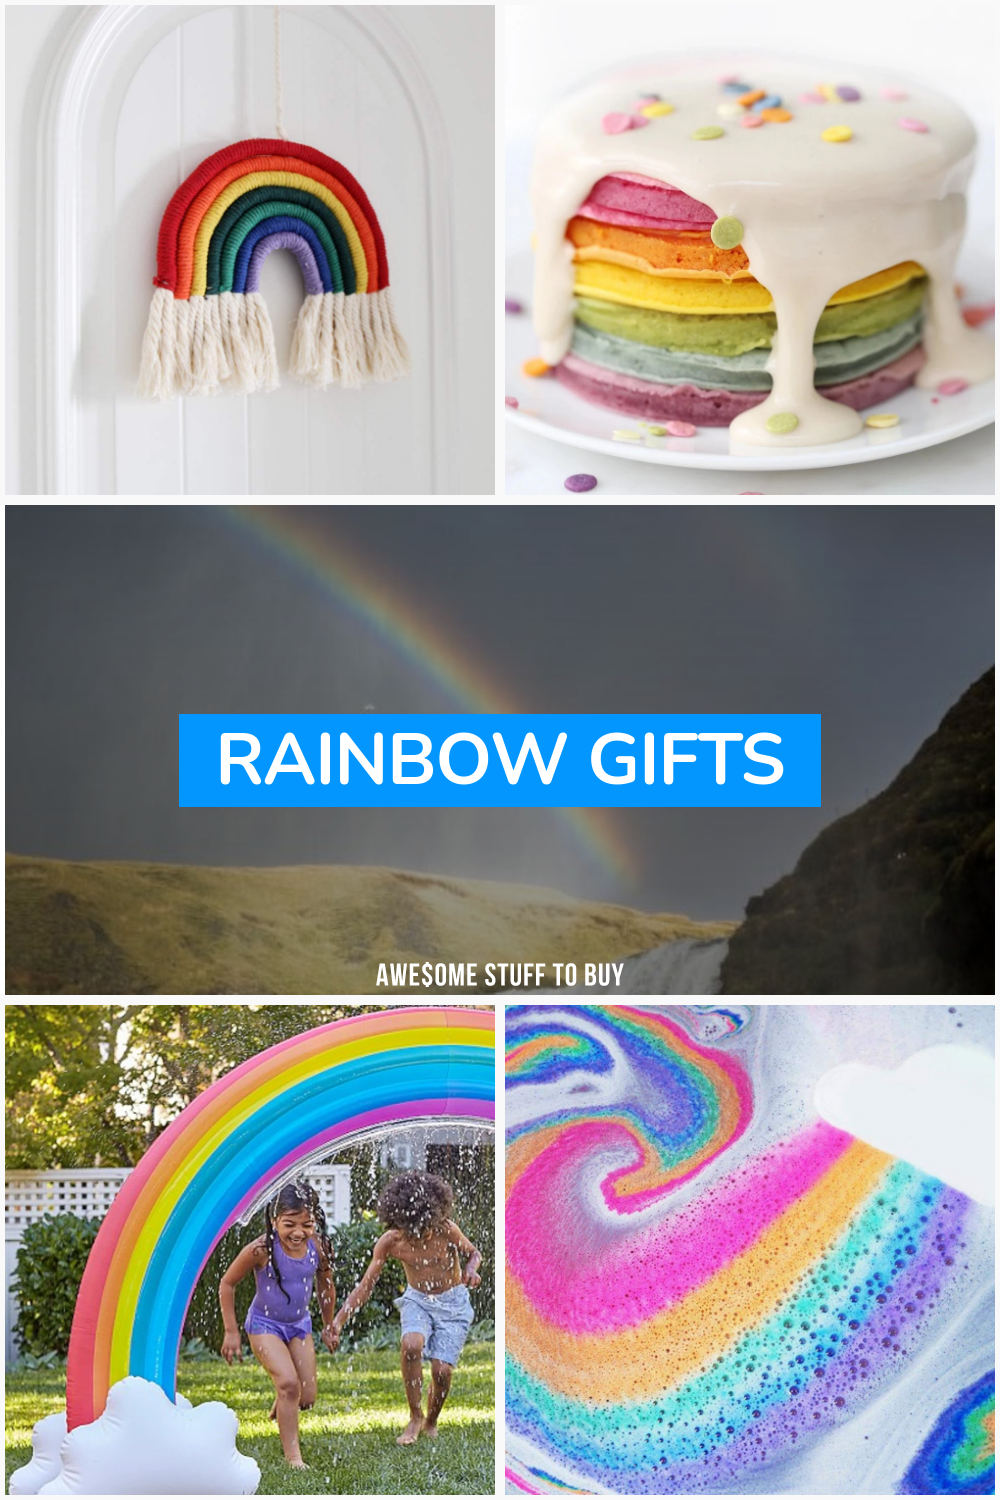 Rainbow Gifts // Awesome Stuff to Buy